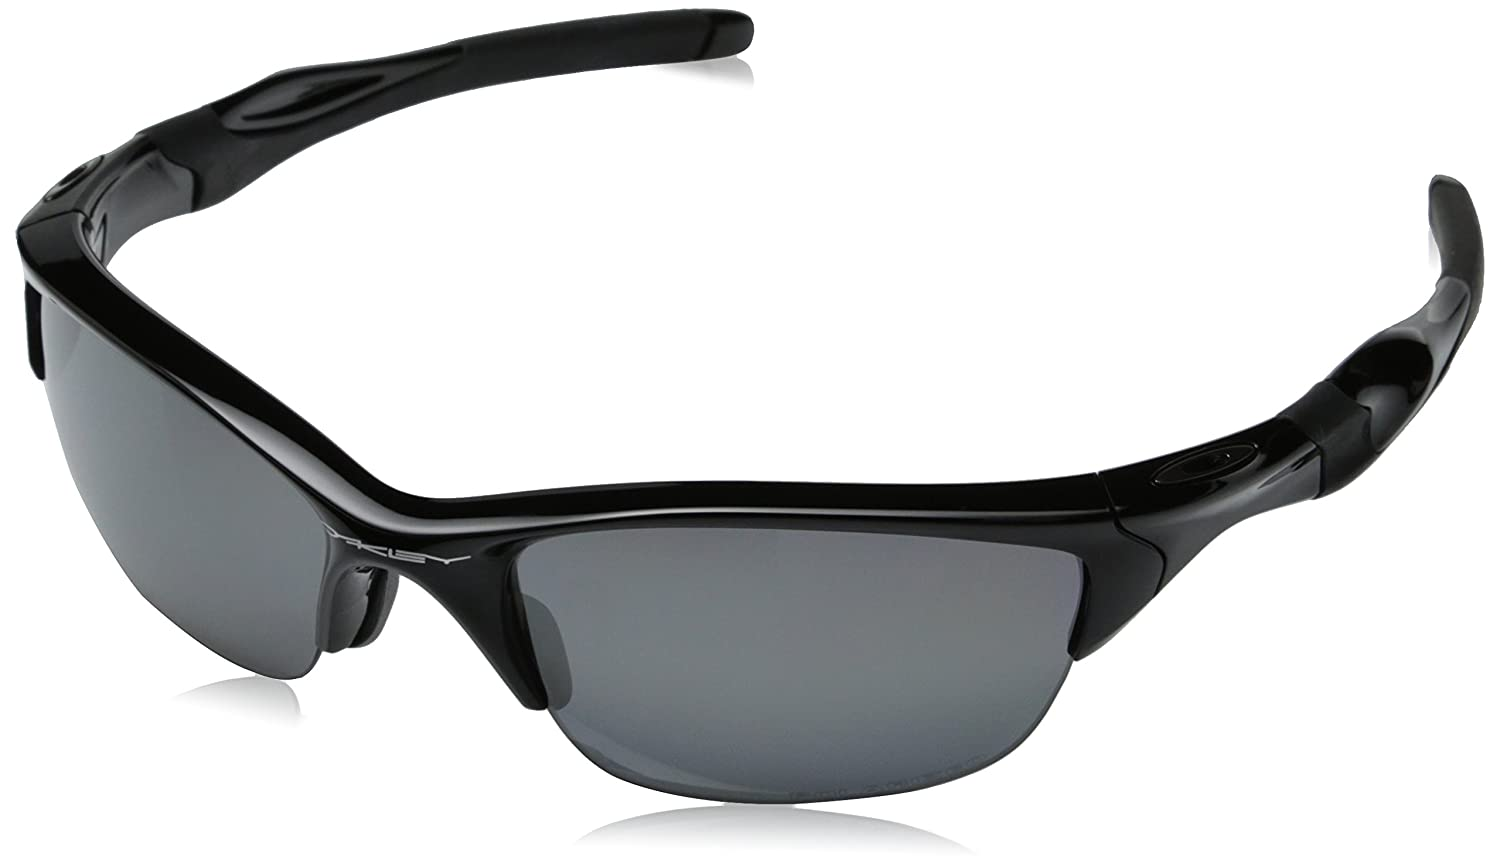 oakley half jacket golf array sunglasses  amazon: oakley mens half jacket 2.0 oo9144 04 polarized oval sunglasses,polished black frame/black iridium polarized lens,one size: oakley: clothing